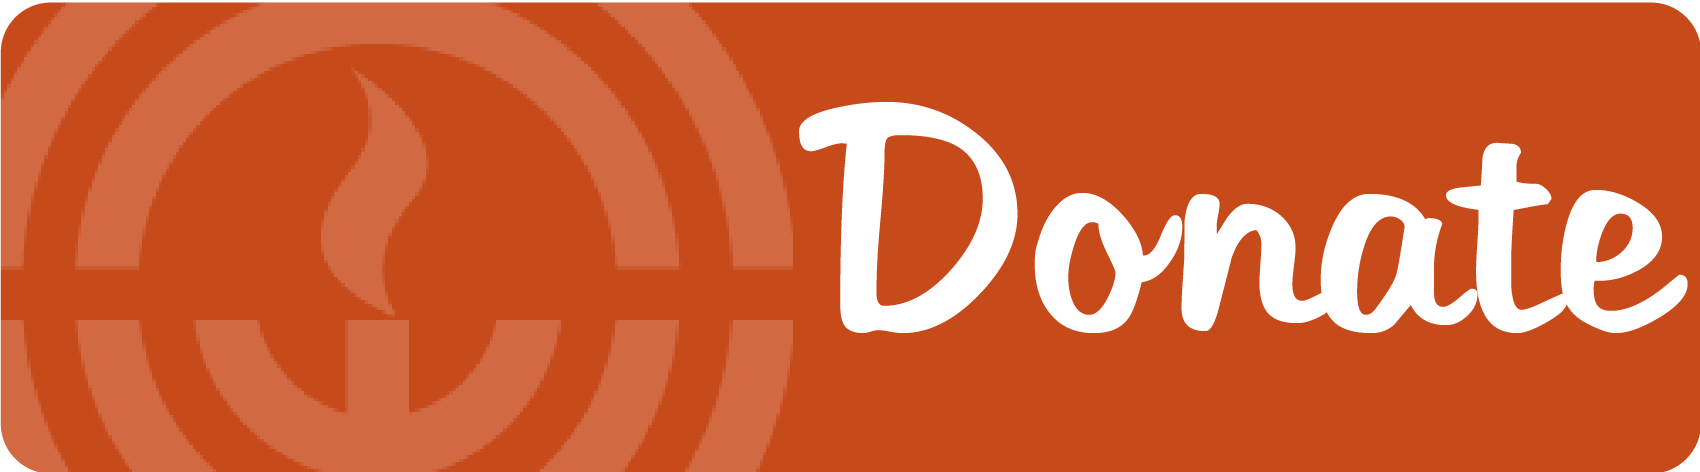 Donate button orange rectangle.png